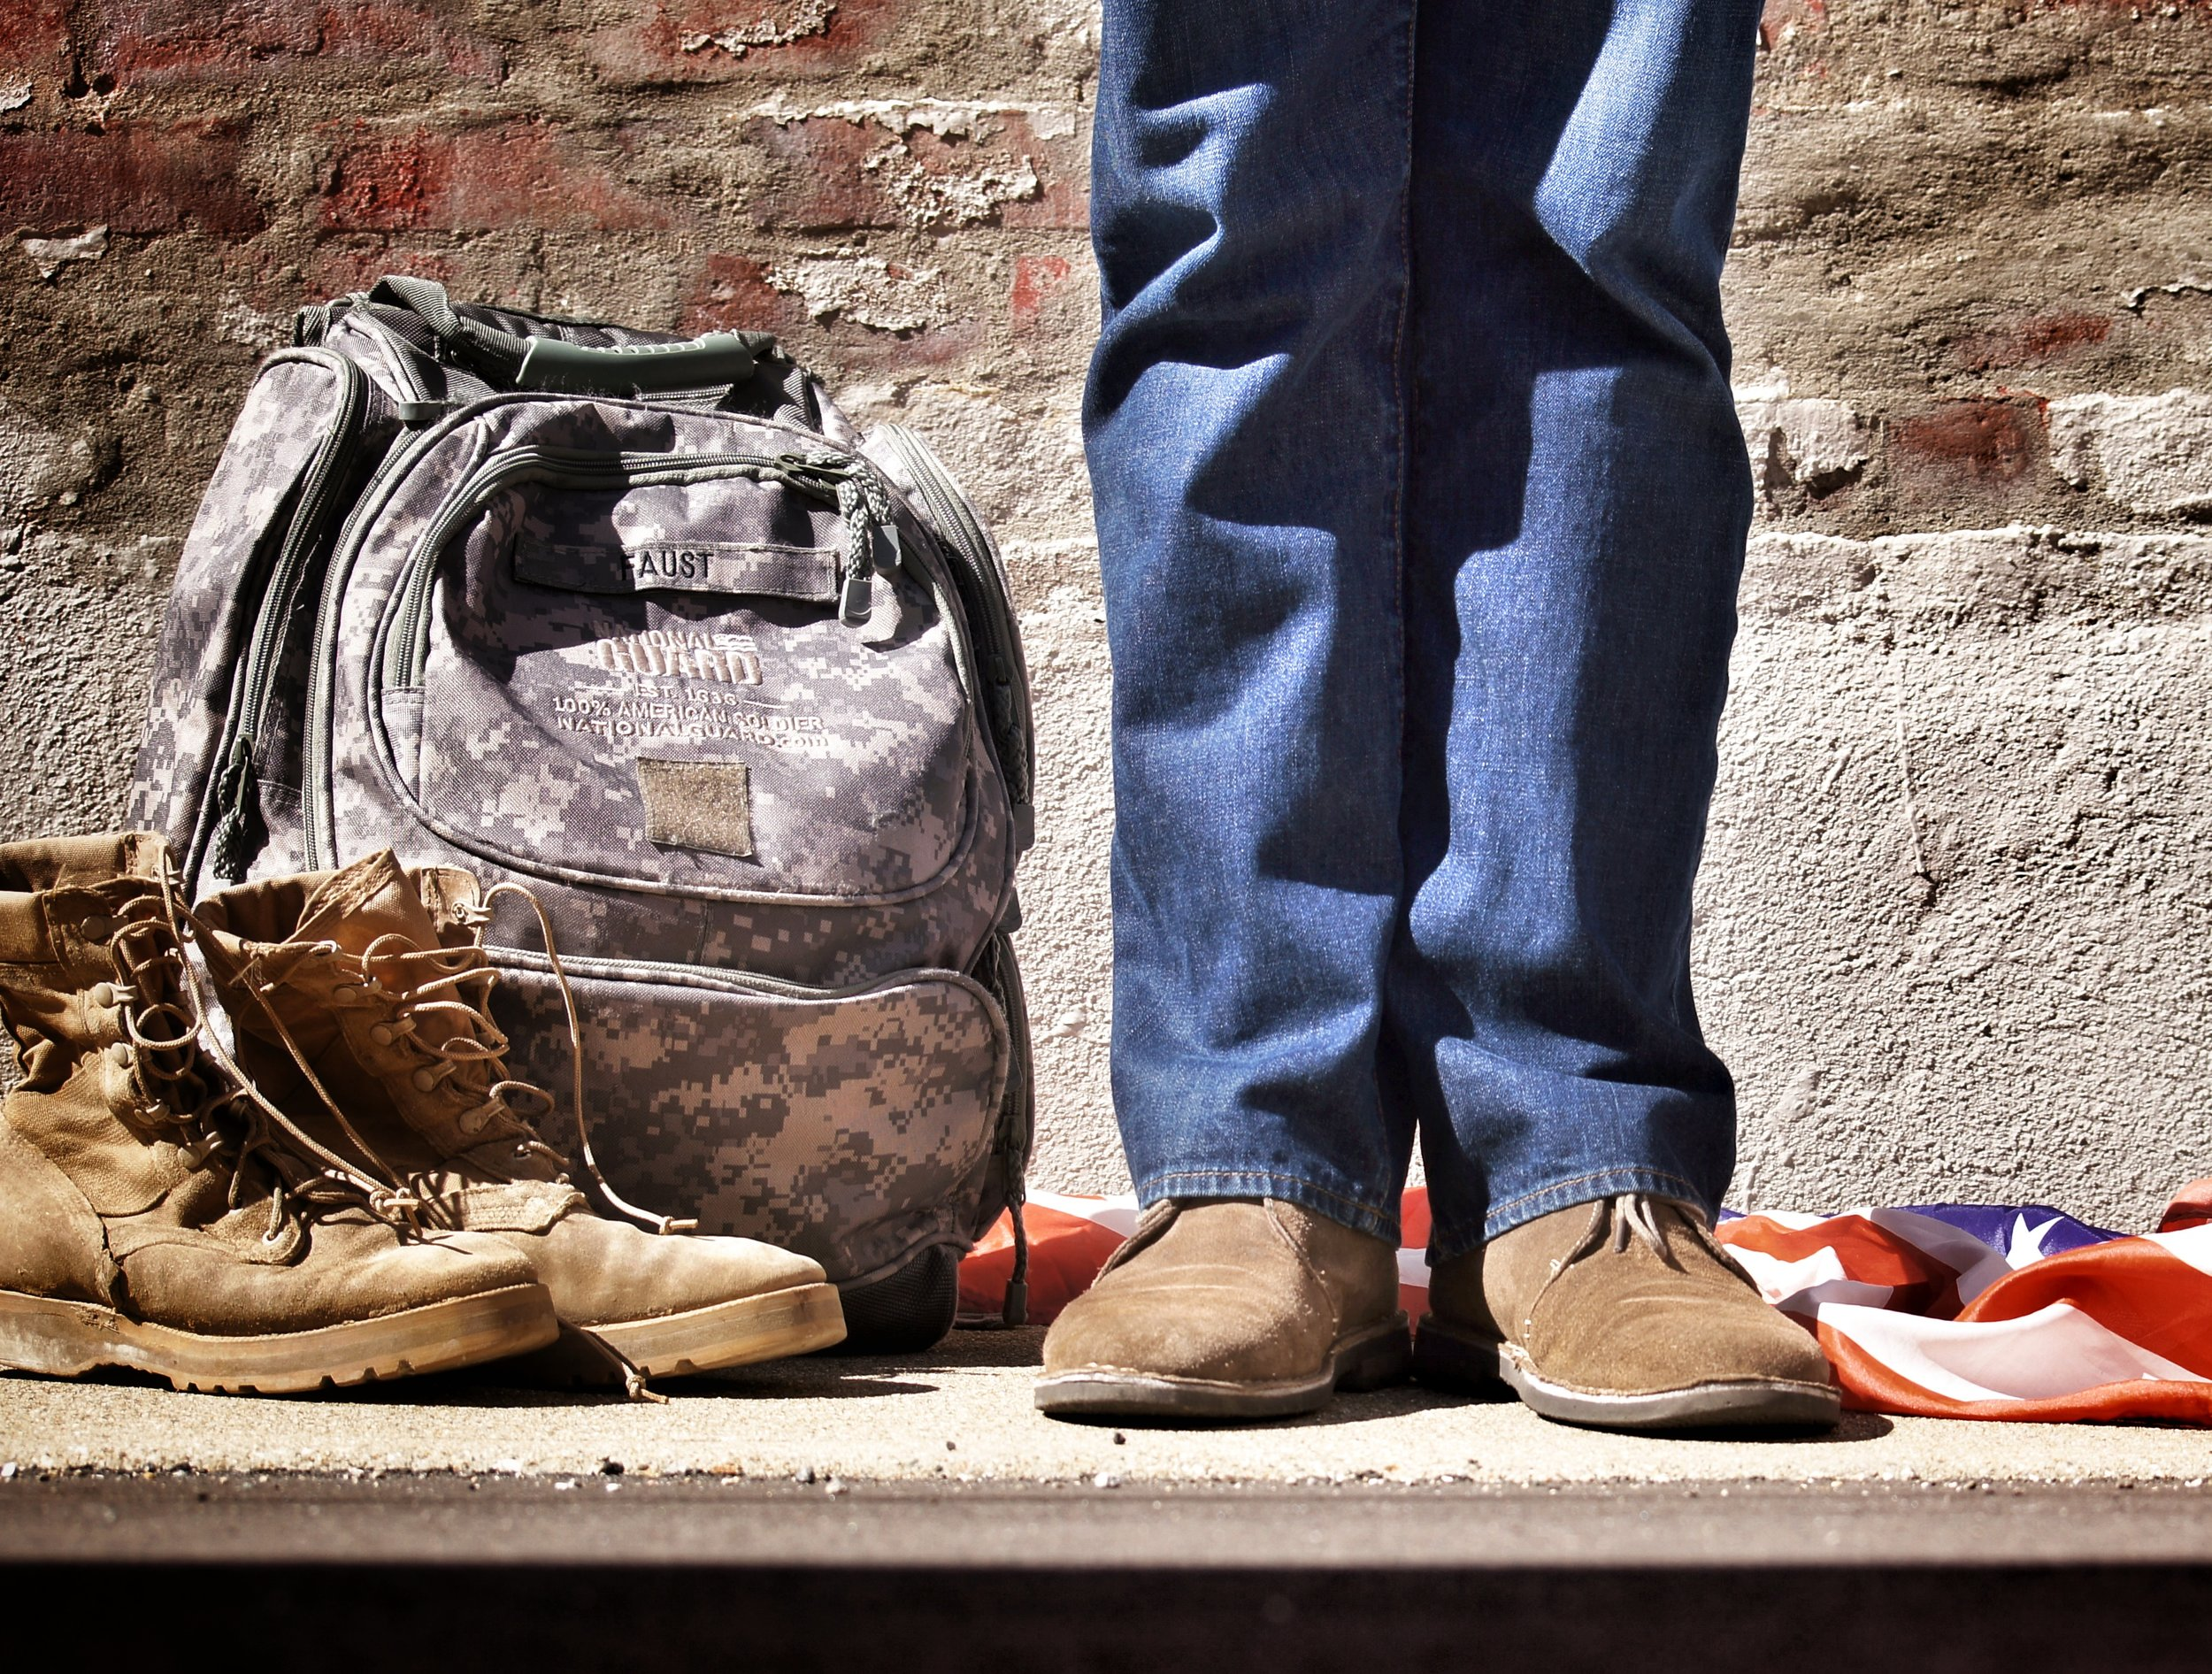 Help us help our Veterans - SIGMA CUTS is dedicated to helping homeless men & women veterans get back on their feet.